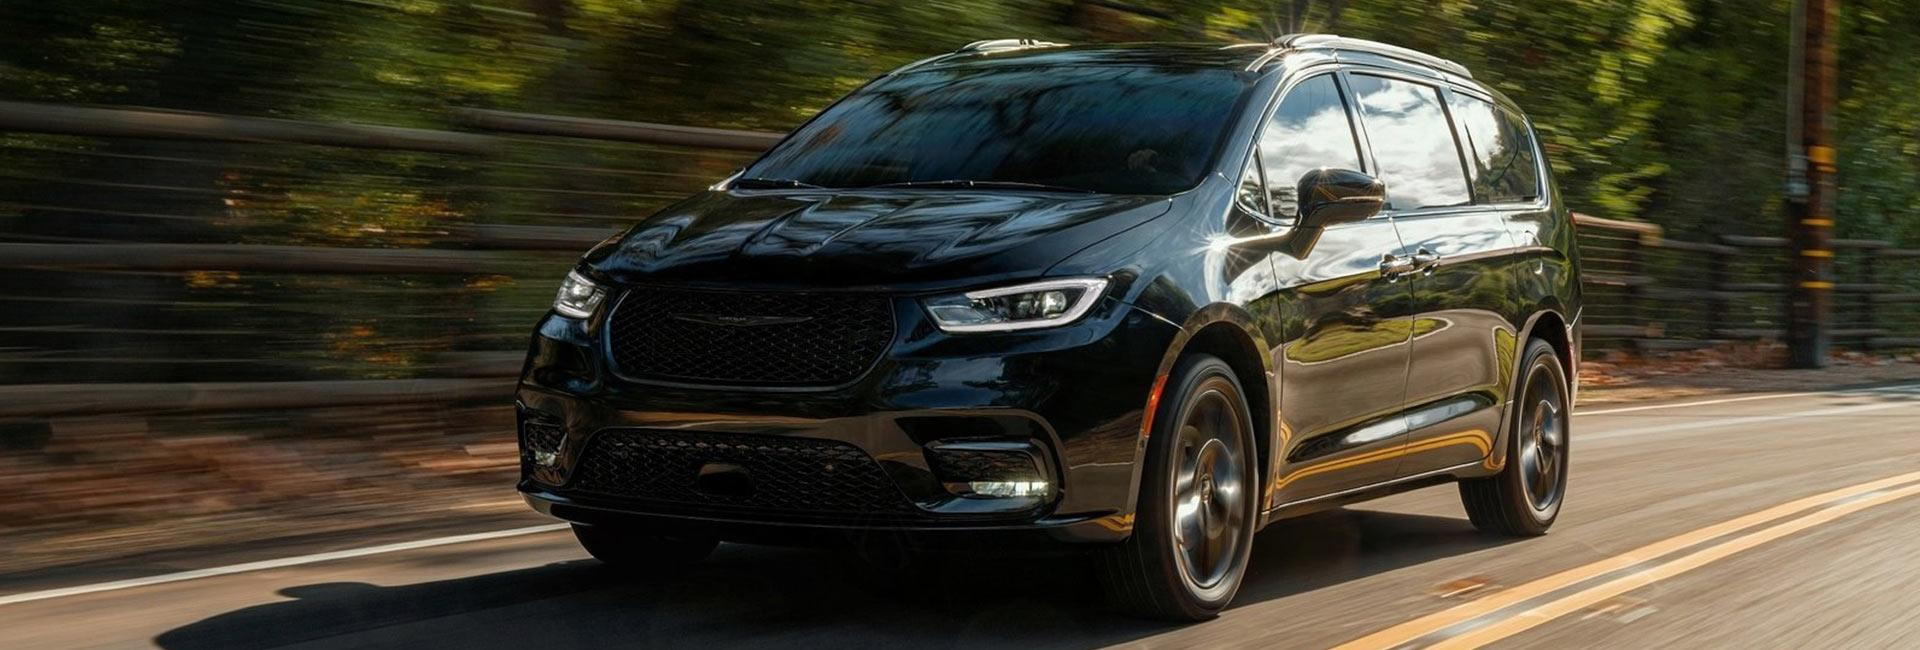 Black 2021 Pacifica in motion